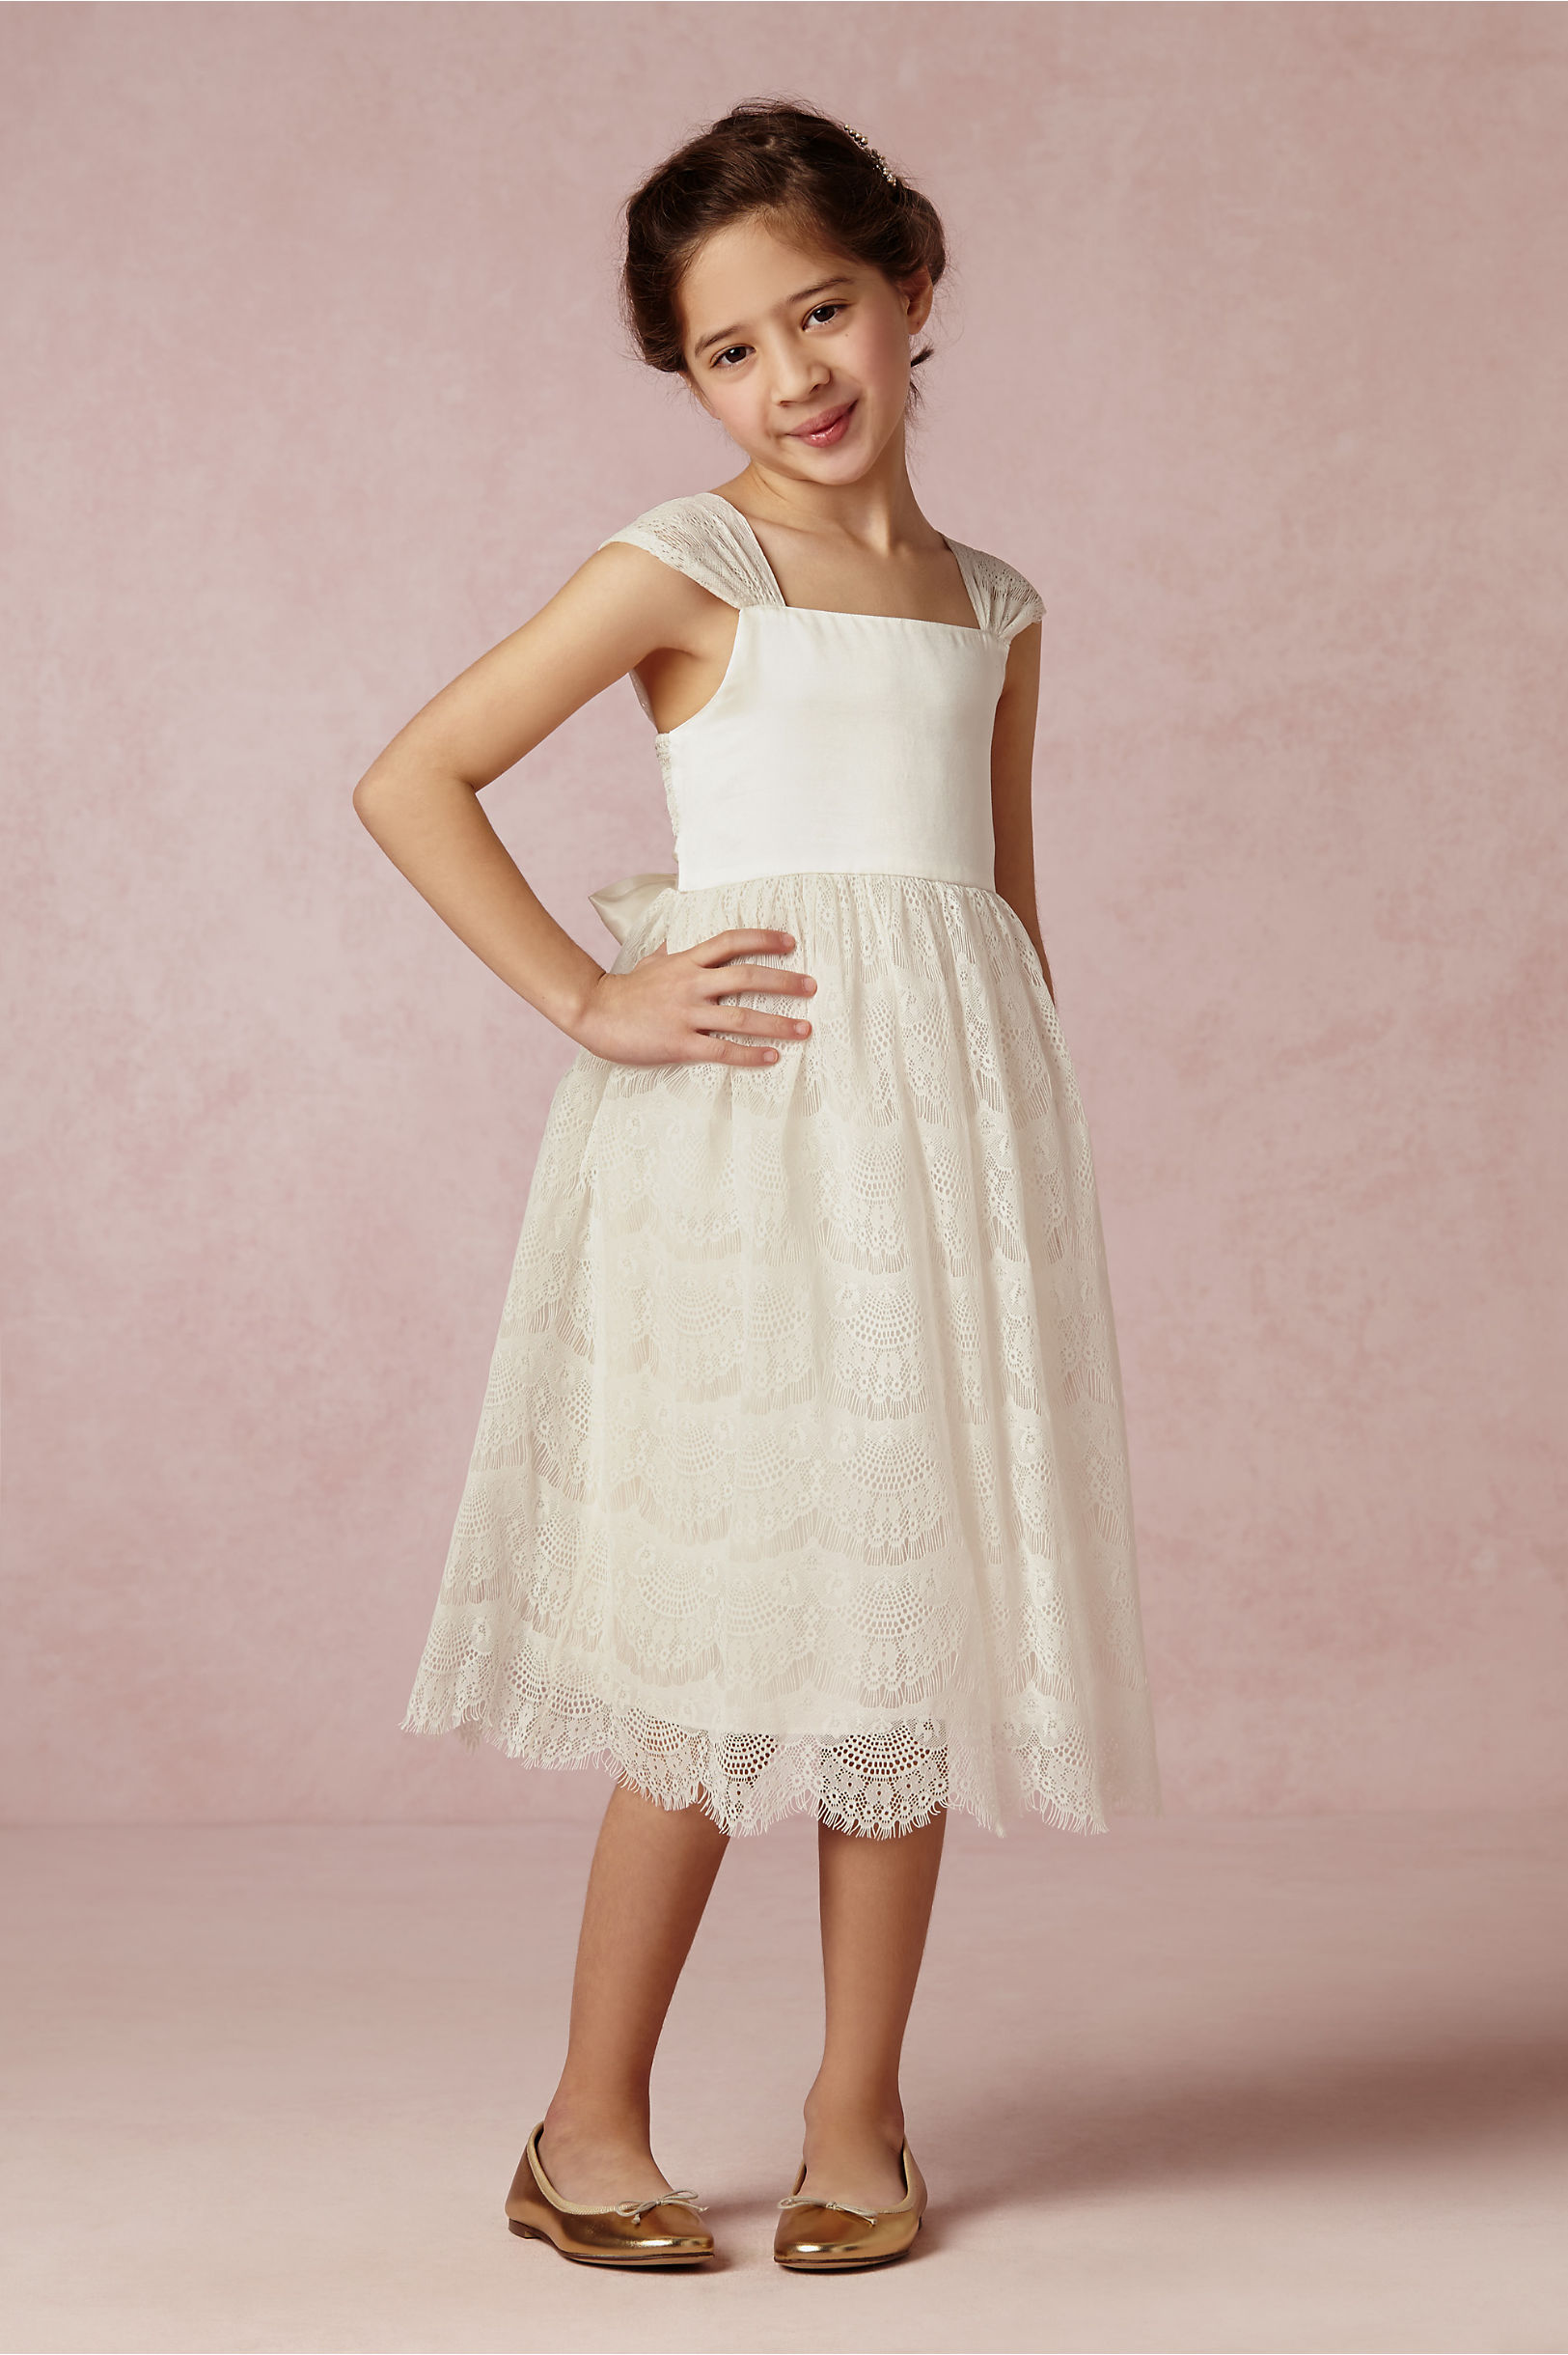 Elsie Dress in Sale | BHLDN